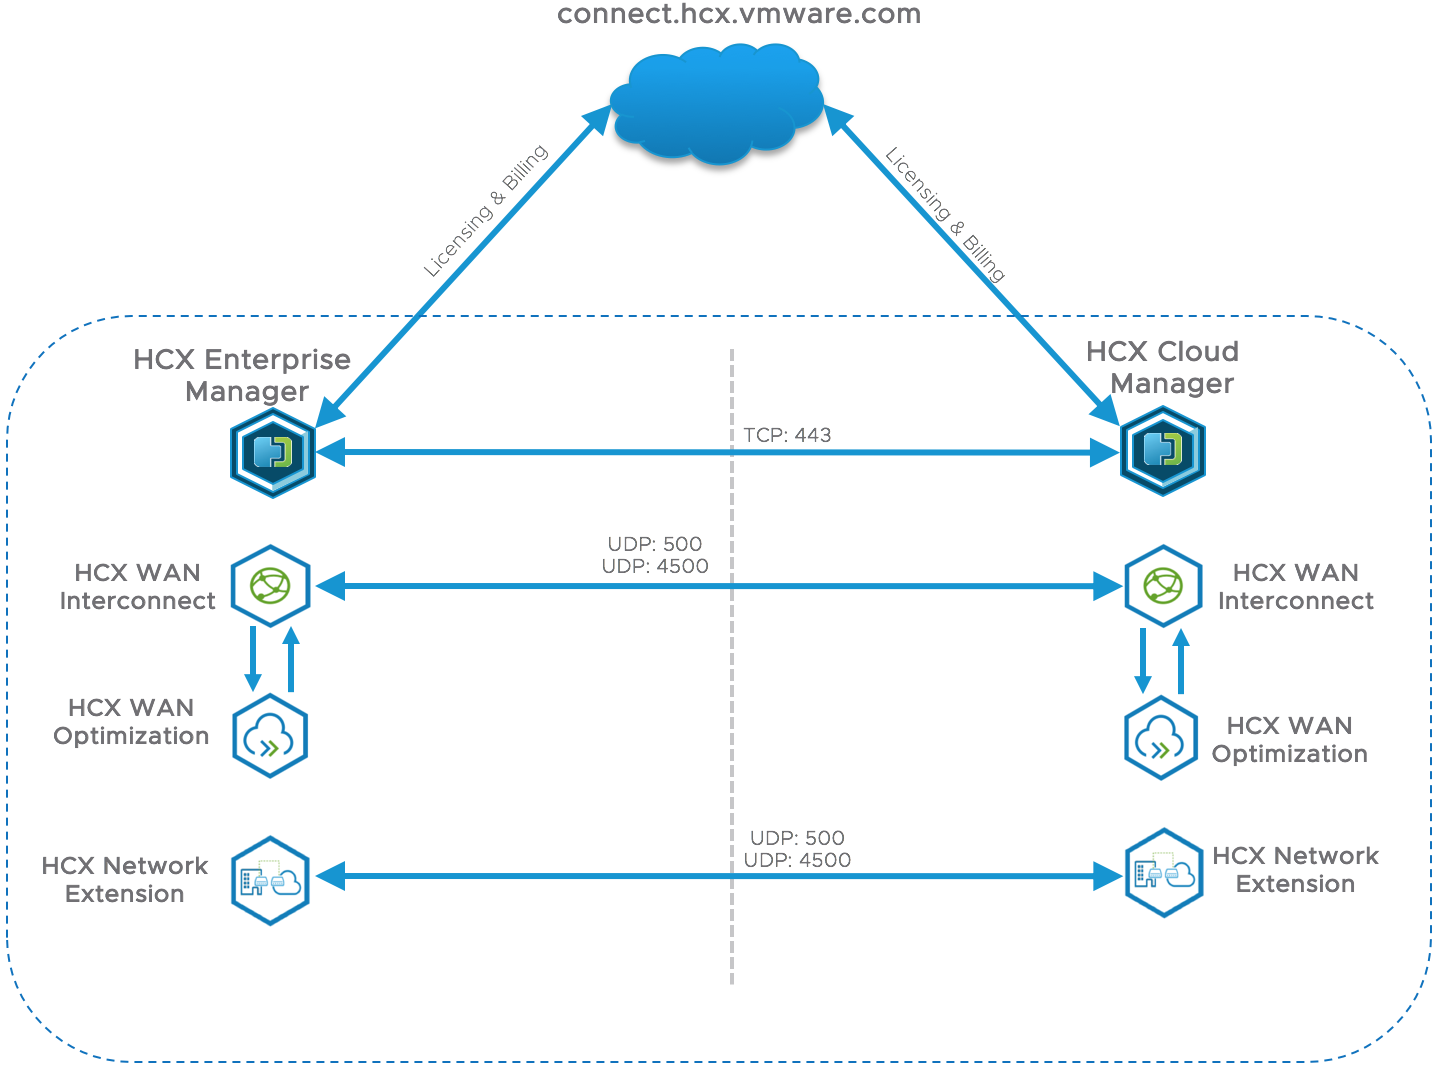 HCX Enterprise Manager connect.hcx.vmware.com TCP: 443 HCX Cloud Manager HCX WAN Interconnect HCX WAN Optimization HCX Network Extension uDp: 9 500 asoo 500 UDP: asoc 9 HCX WAN Interconnect HCX WAN Optimization HCX Network Extension